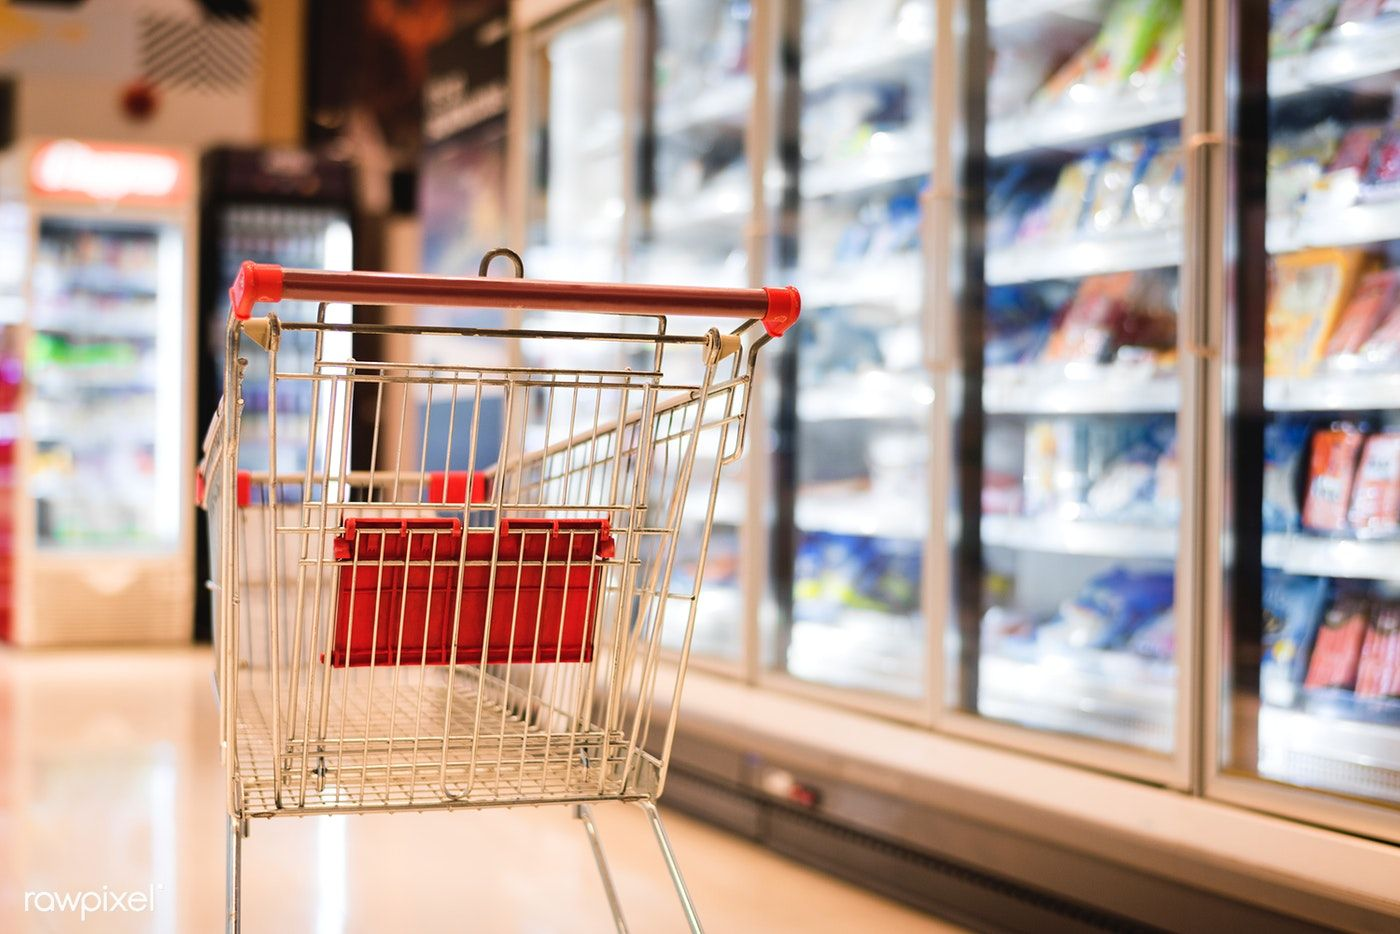 Shopping cart in a super market free image by